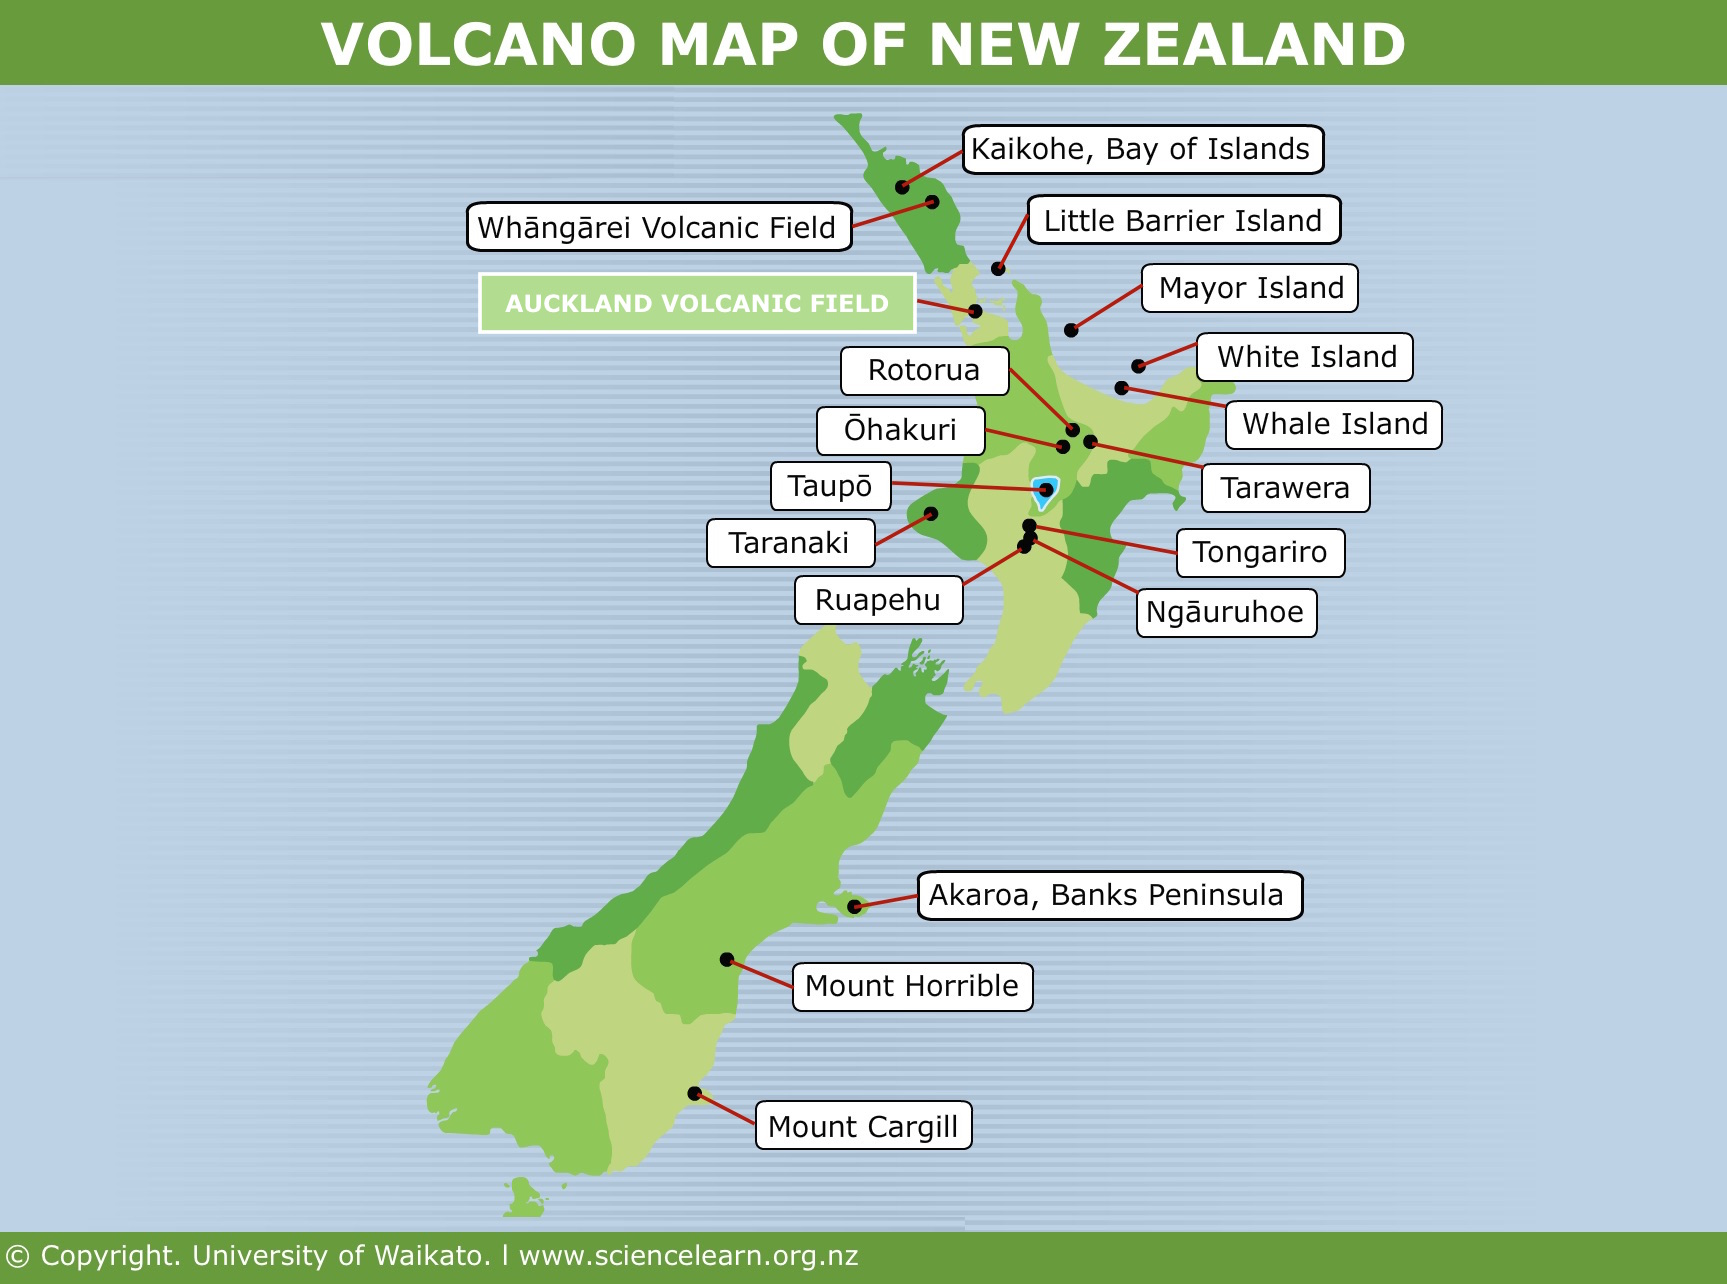 show me a diagram of a volcanic zone collision plate tectonics  volcanoes and earthquakes     science learning hub  plate tectonics  volcanoes and